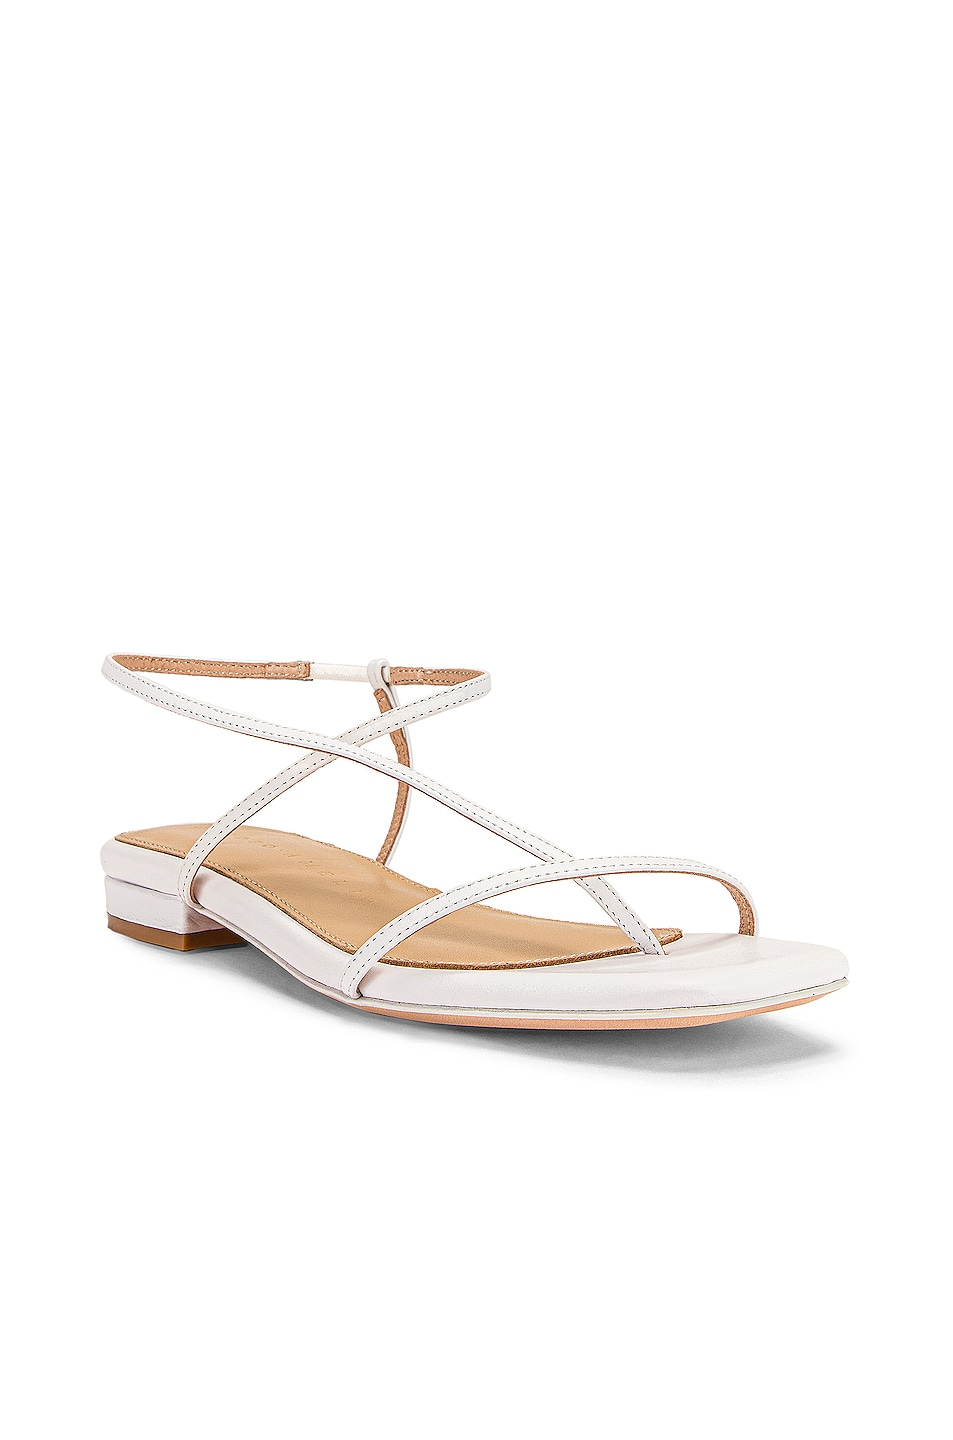 Image 2 of Studio Amelia 1.2 Sandal in White